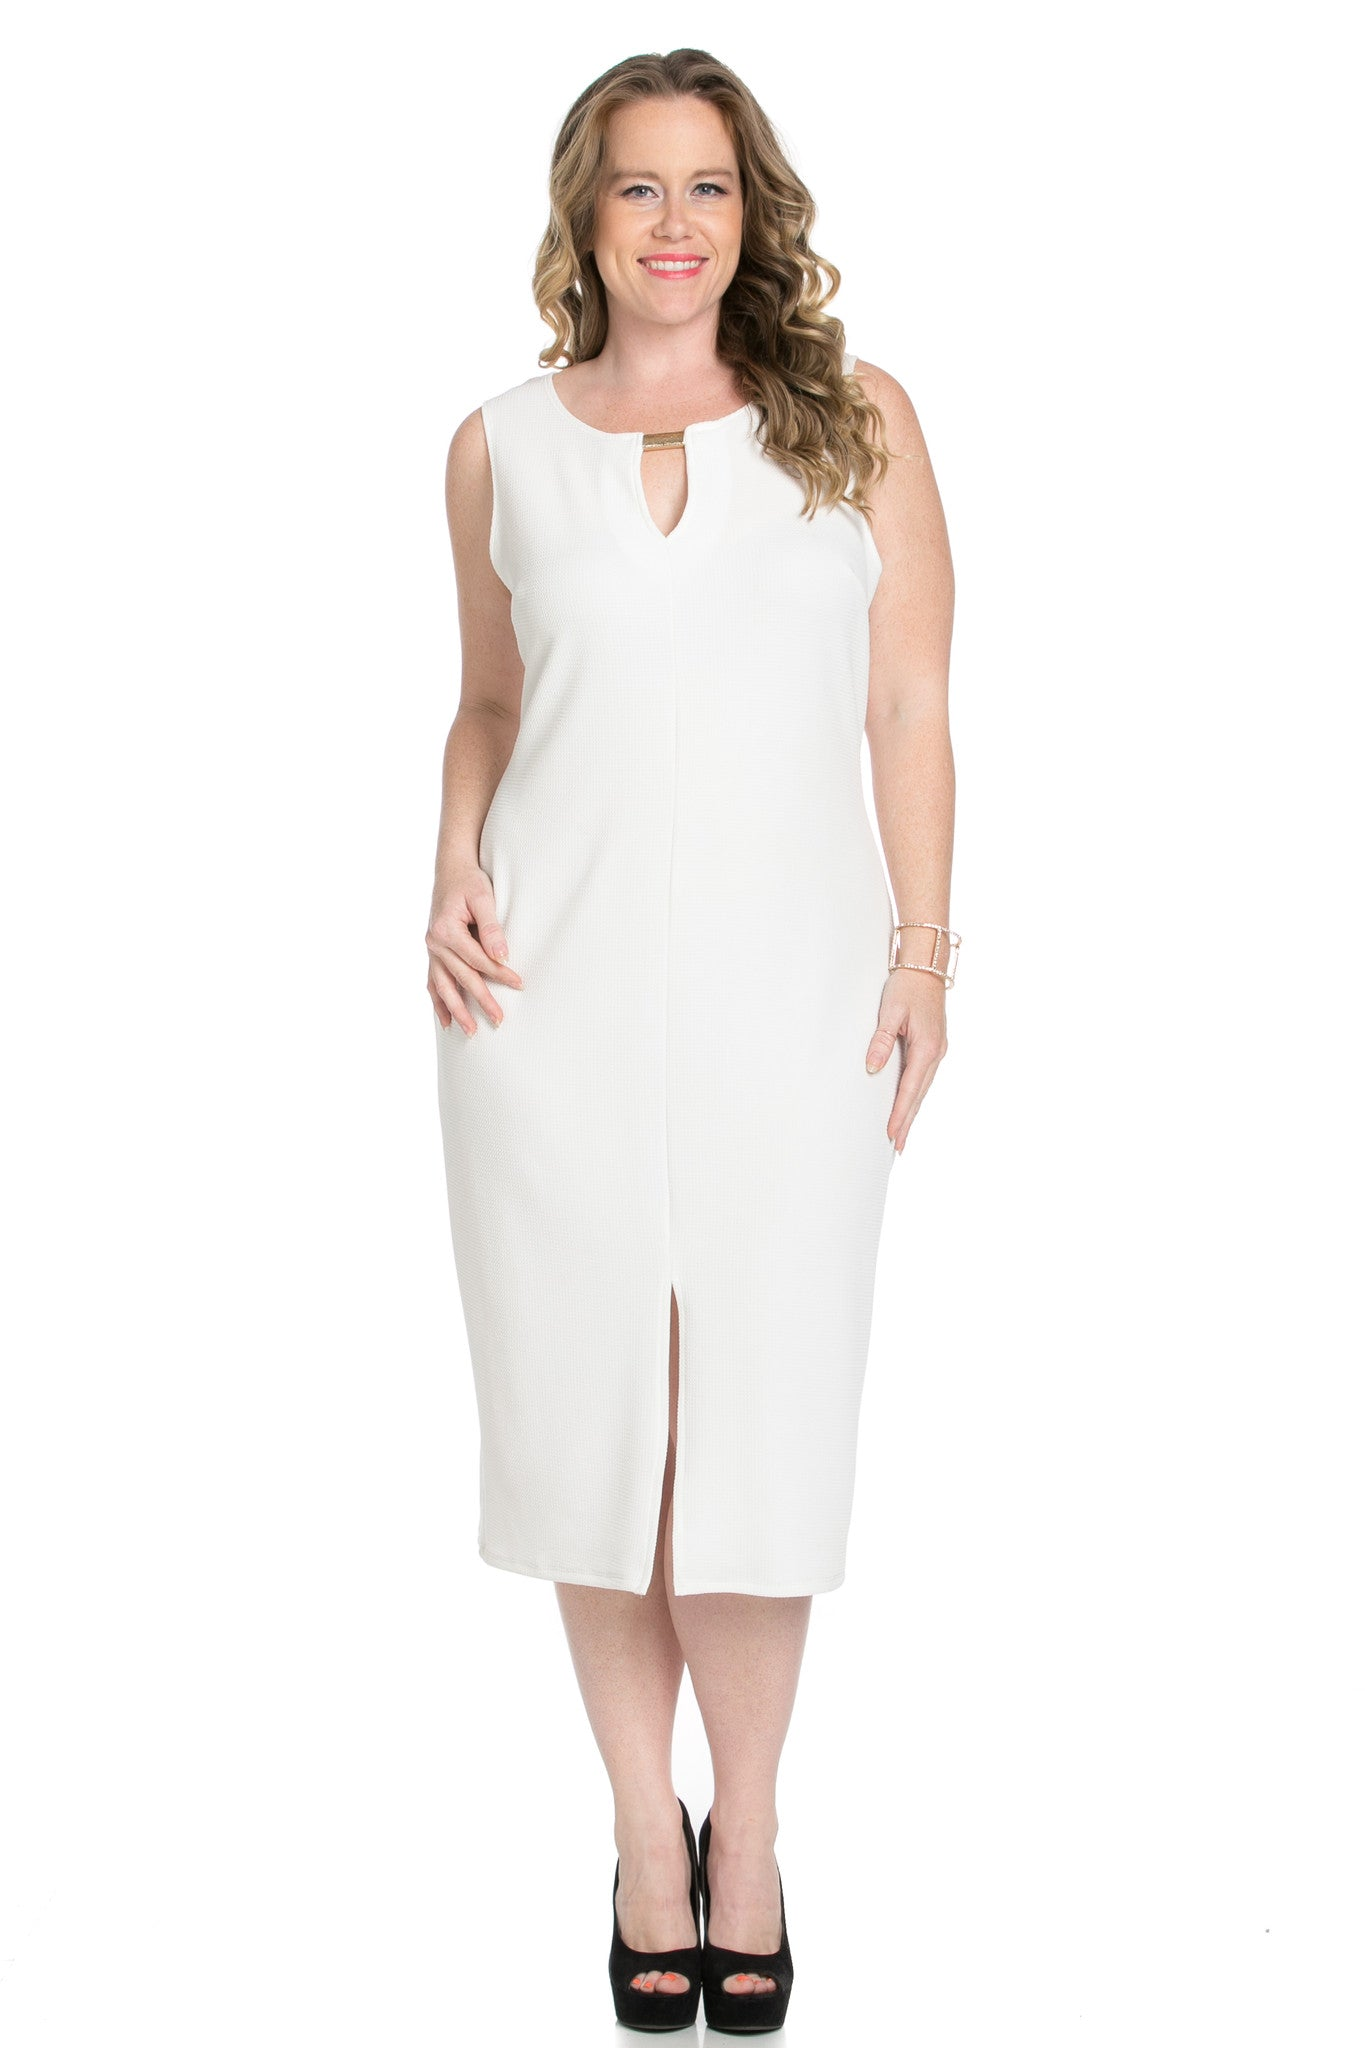 White Modest a Bit with Bare Shoulders Dress - Dresses - My Yuccie - 1